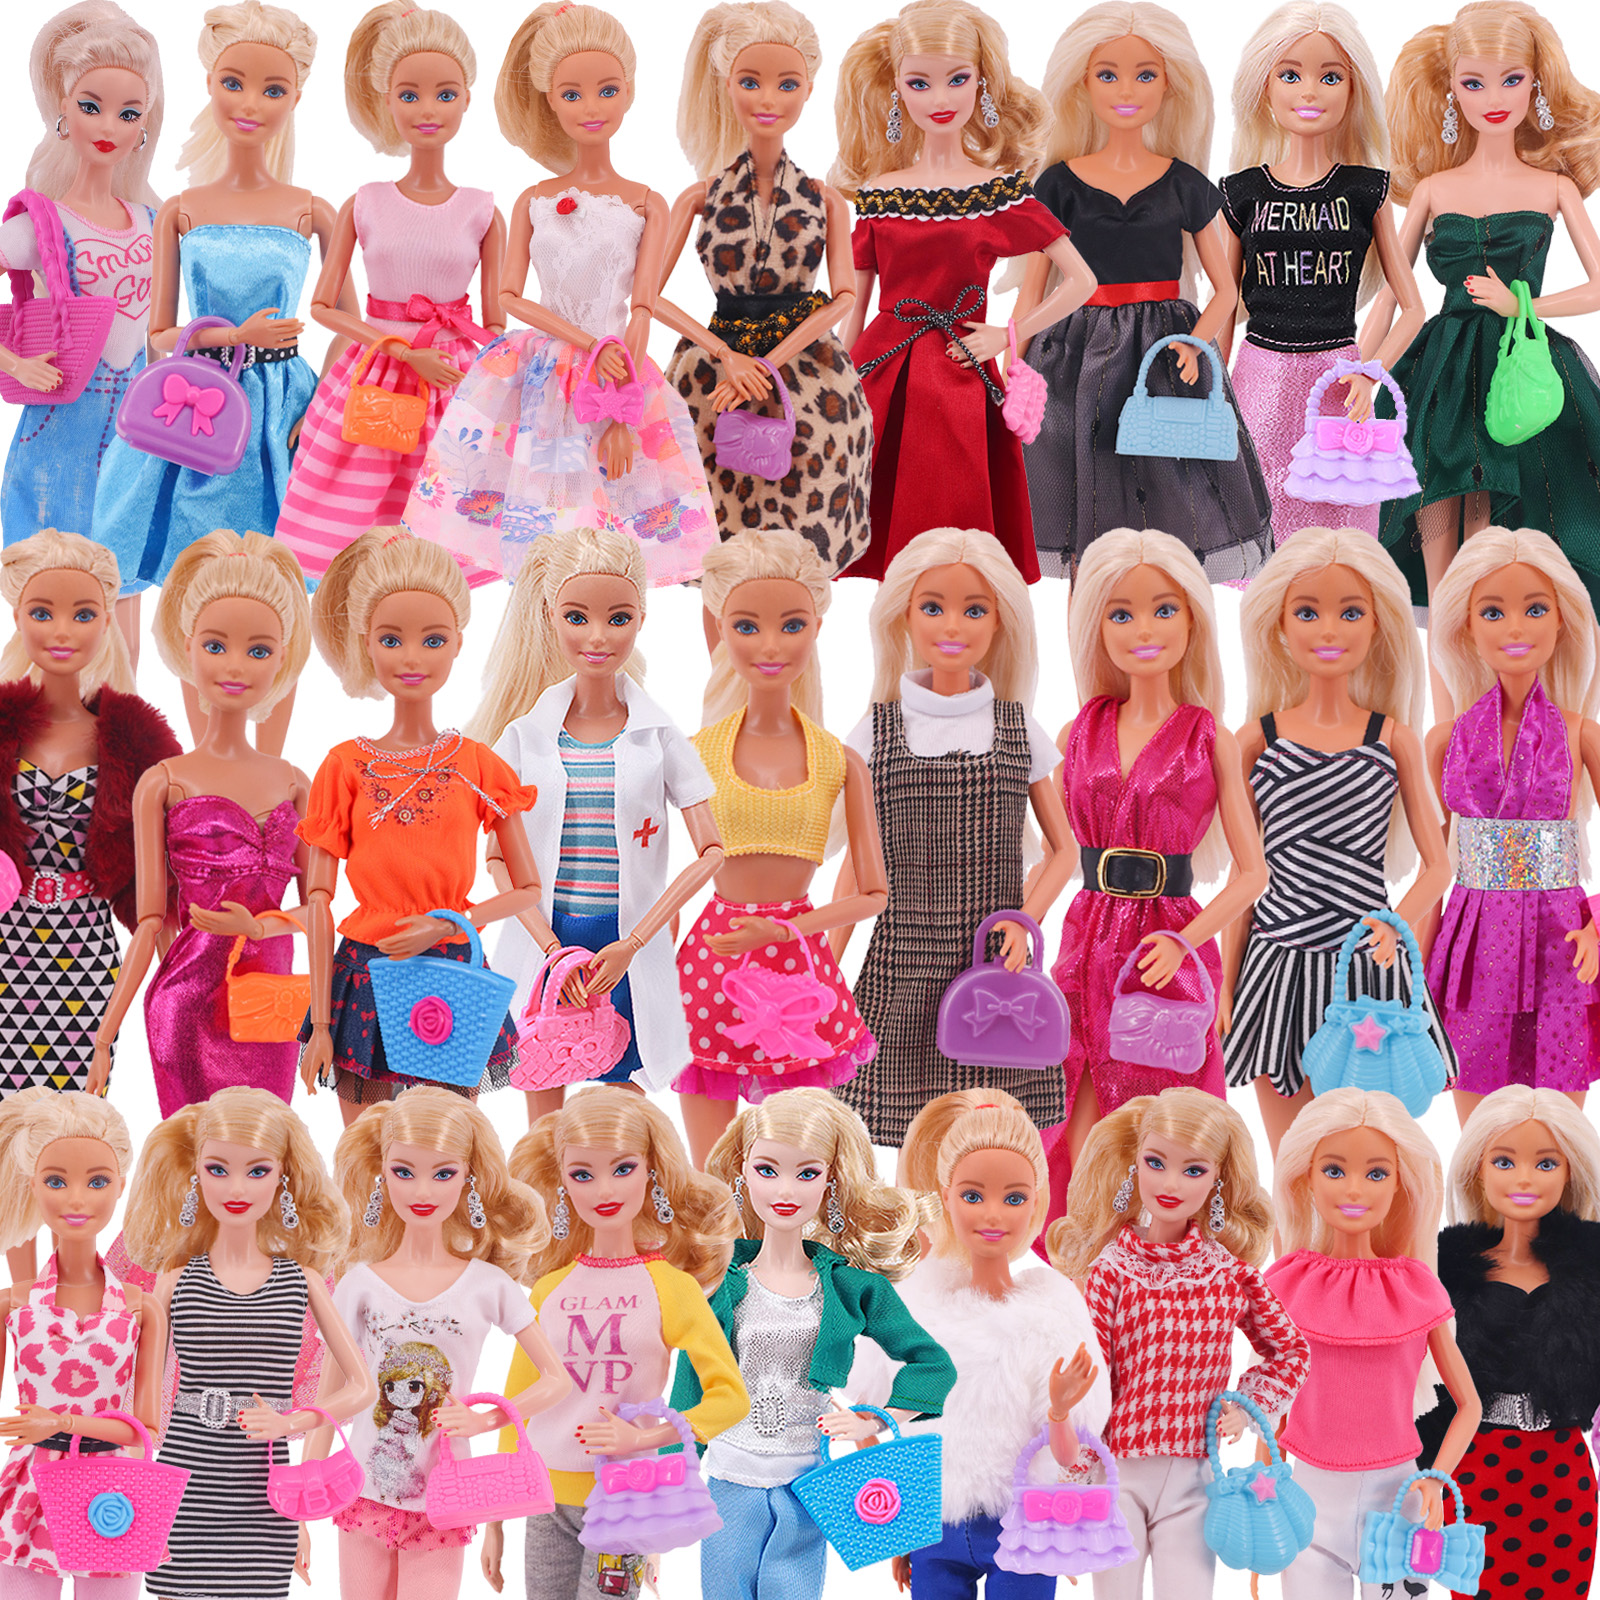 3Ps/Set Barbies Doll Clothes Tops+Jeans/Dress+Bag Baby Clothes Princess Dress Skirt For Barbie Doll Accessories Girl` Toy Russia